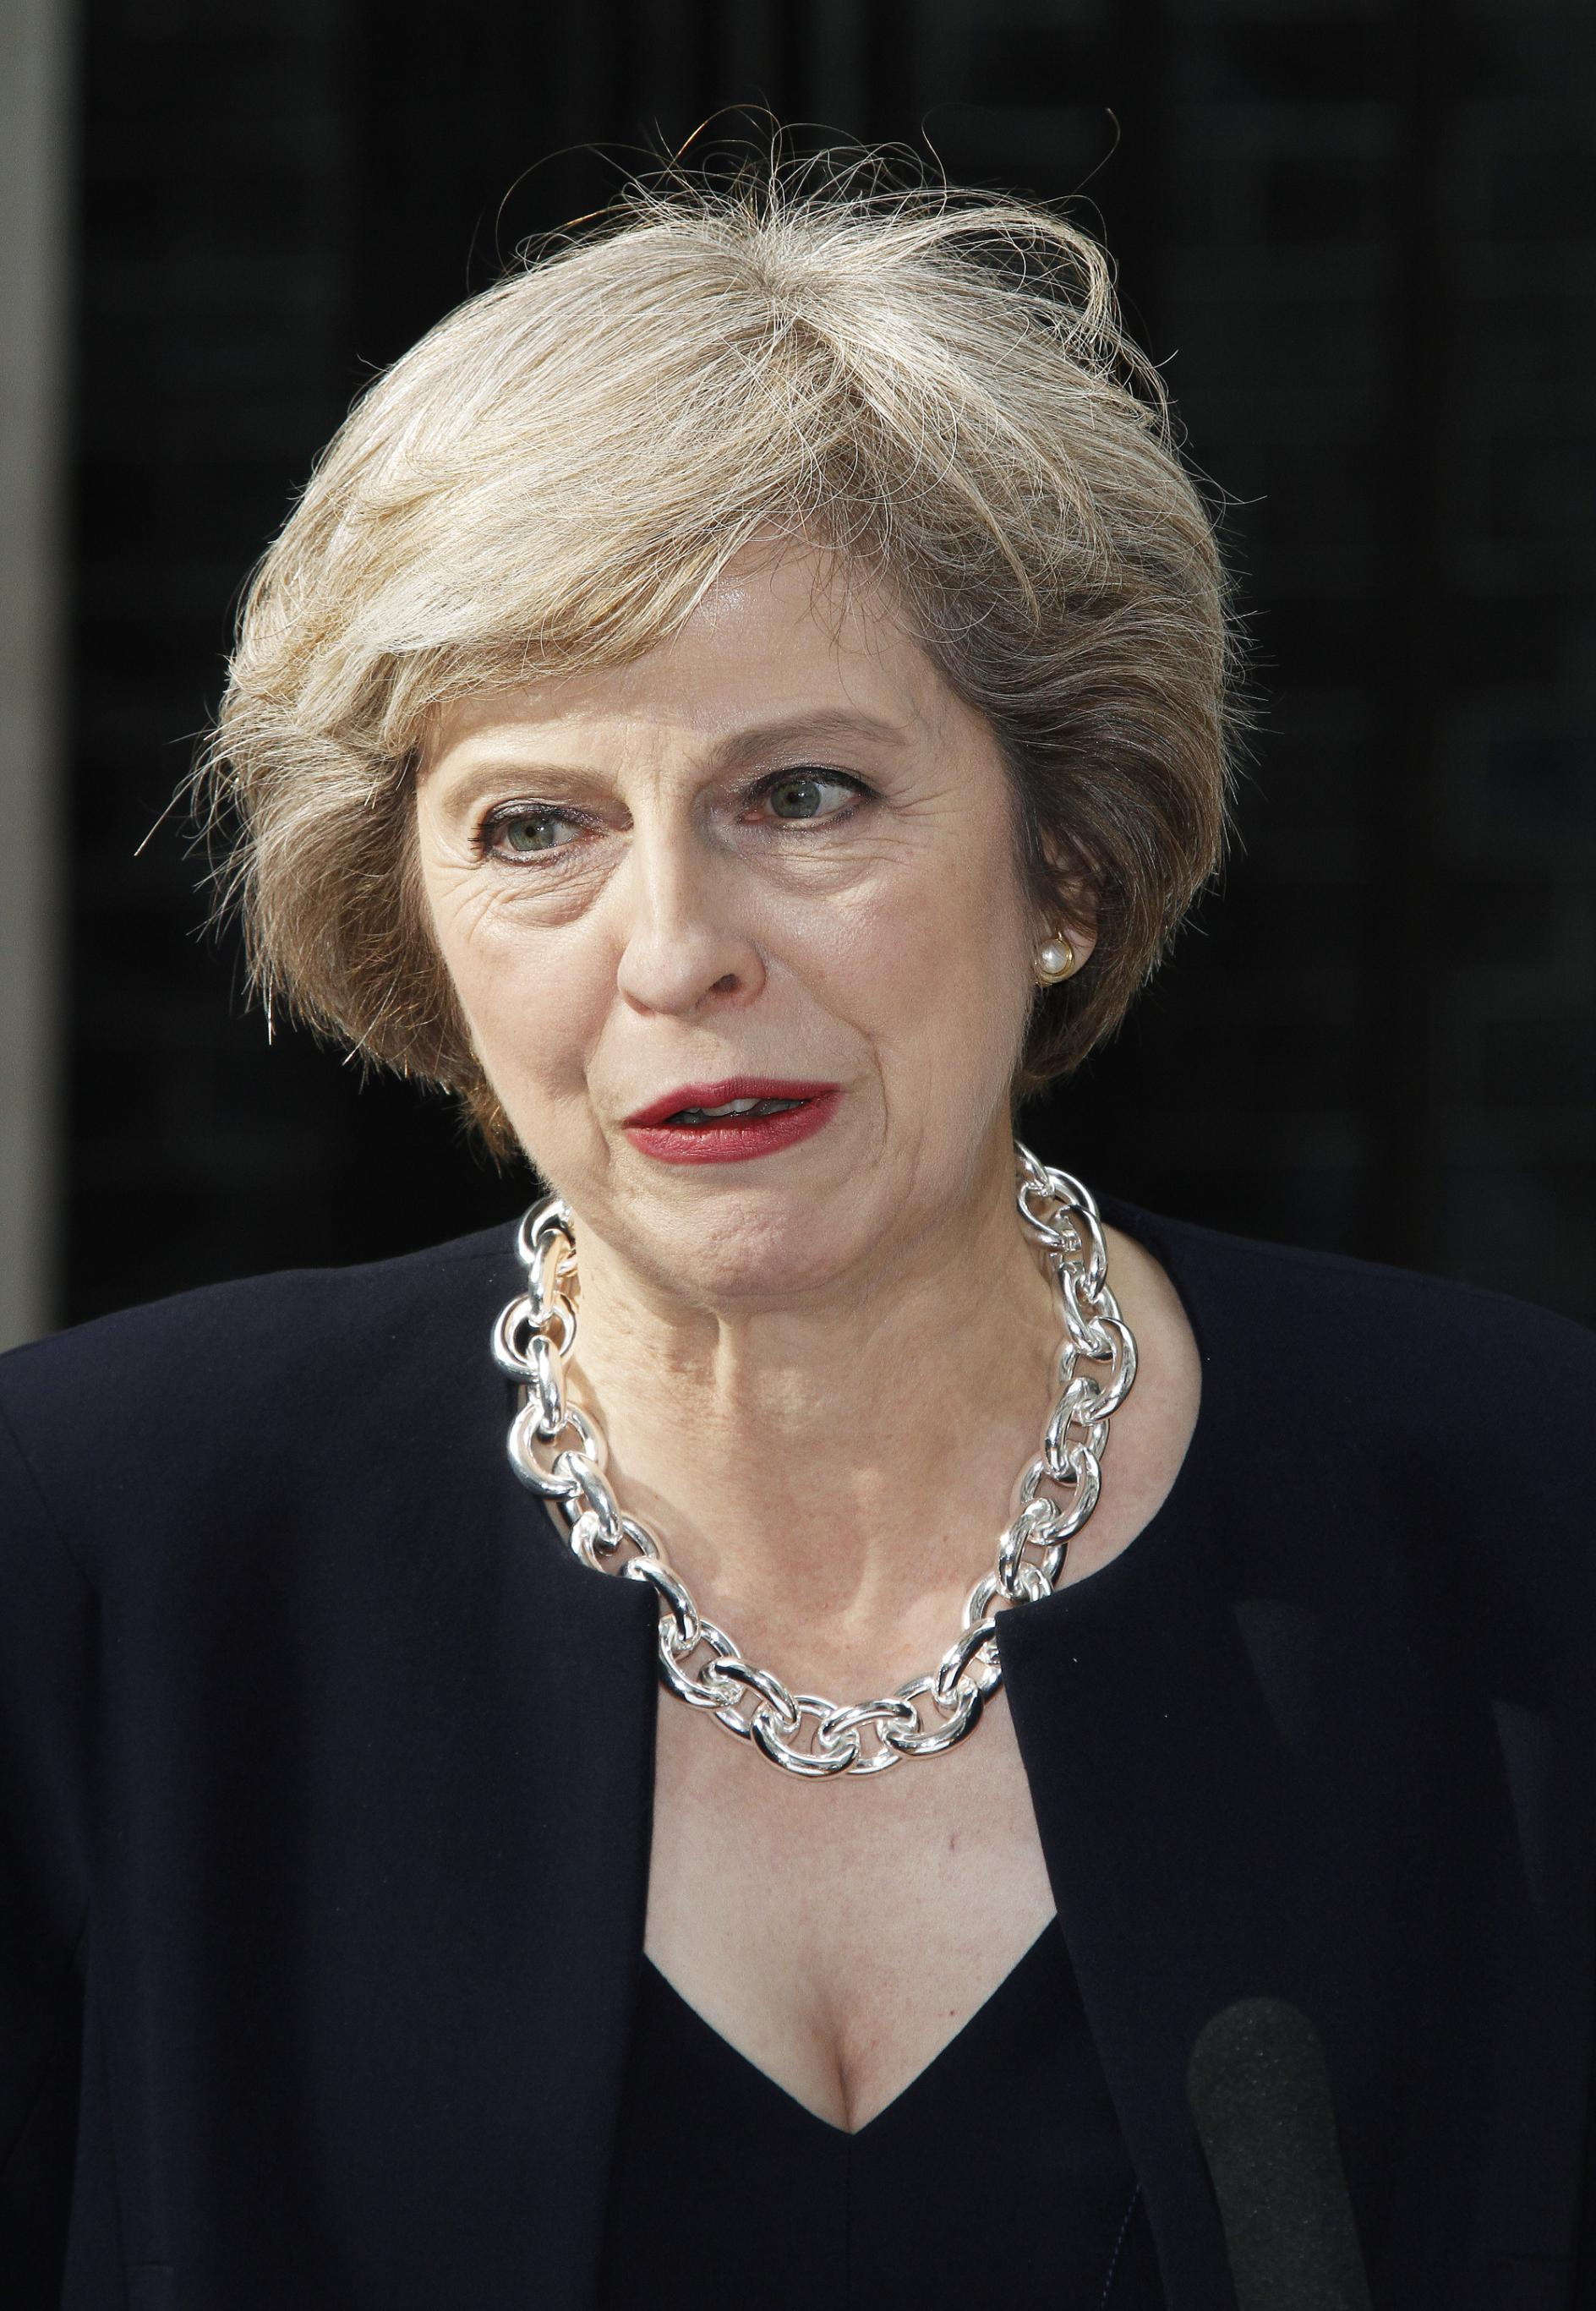 Name:  Theresa May 20.jpg